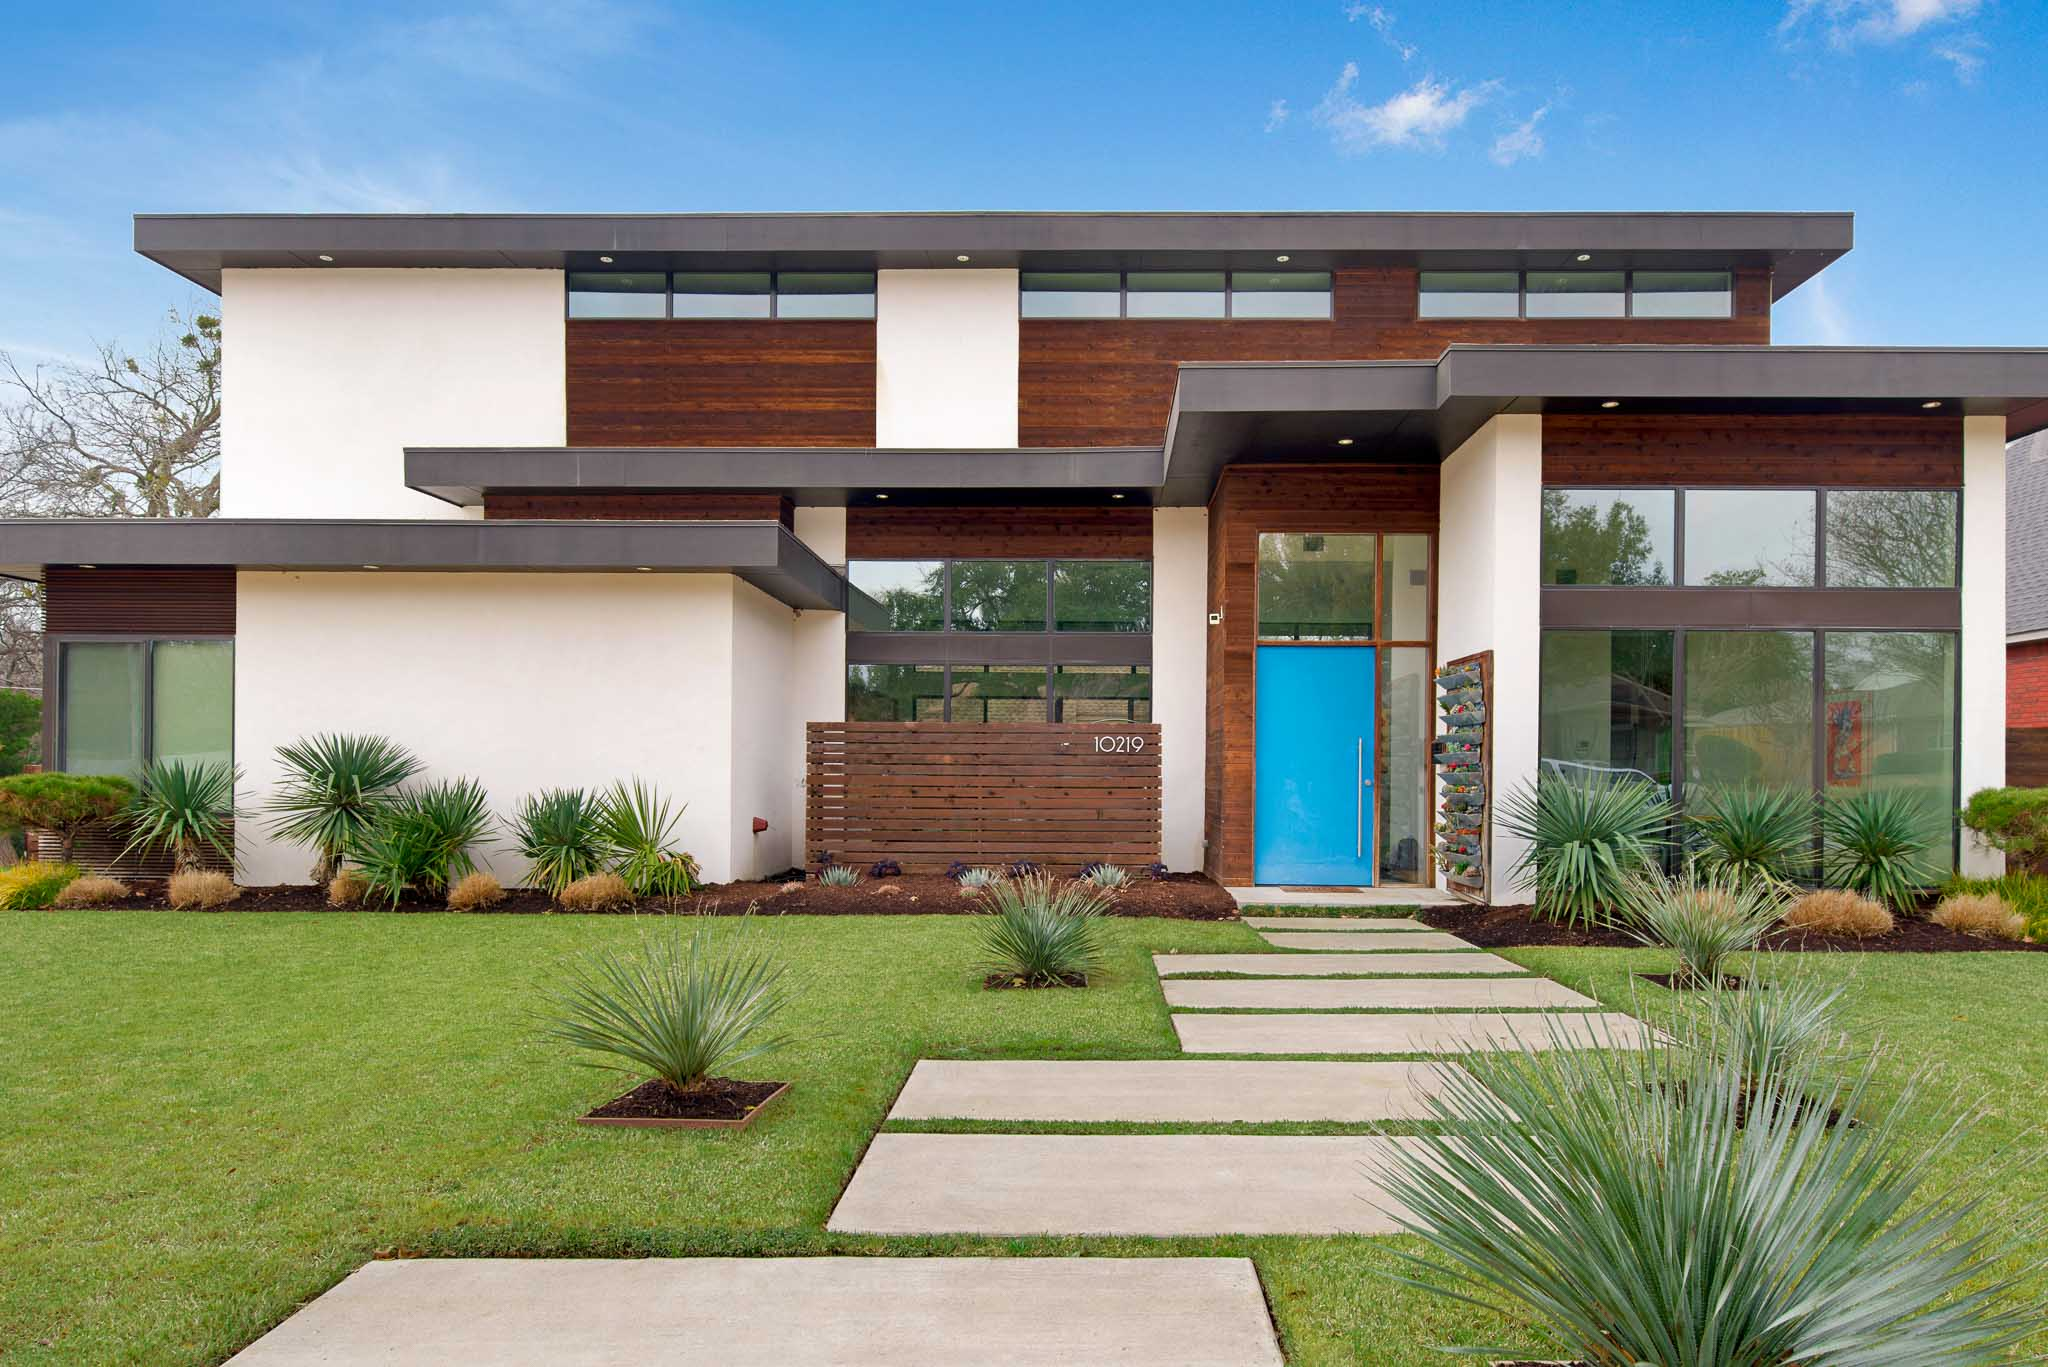 Home designed by renowned architect photographed by Sharp Frame